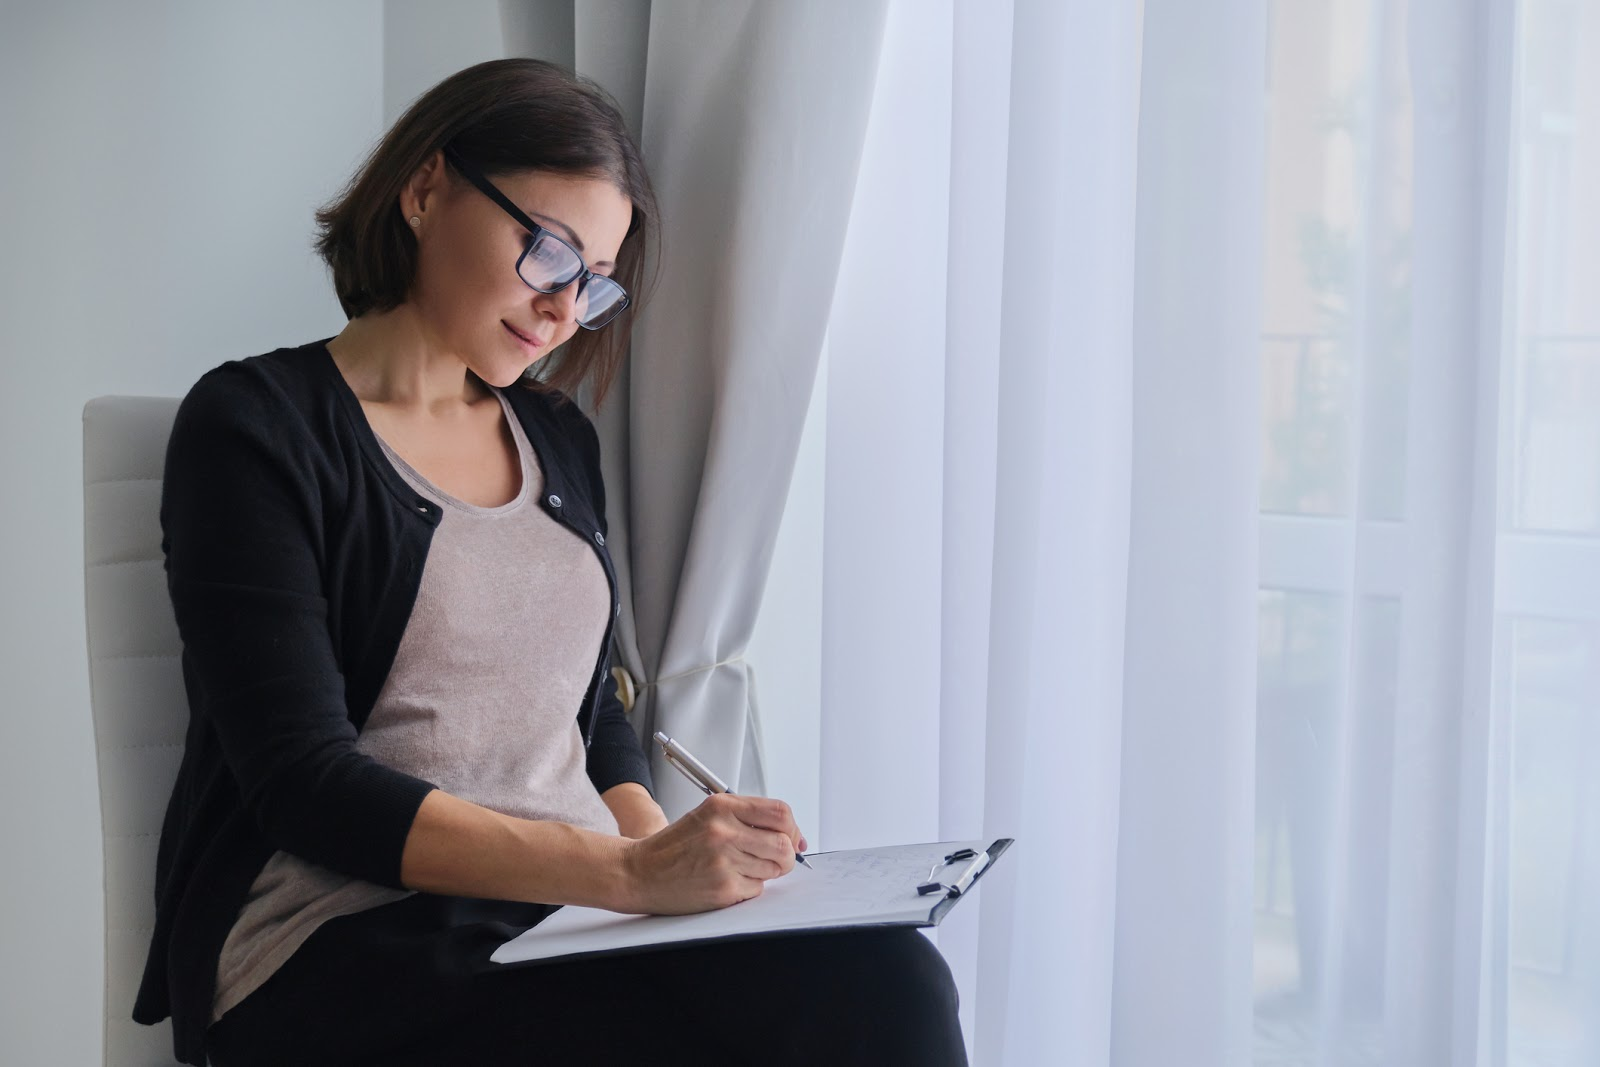 A woman with glasses sitting down filling out paperwork on a clipboard